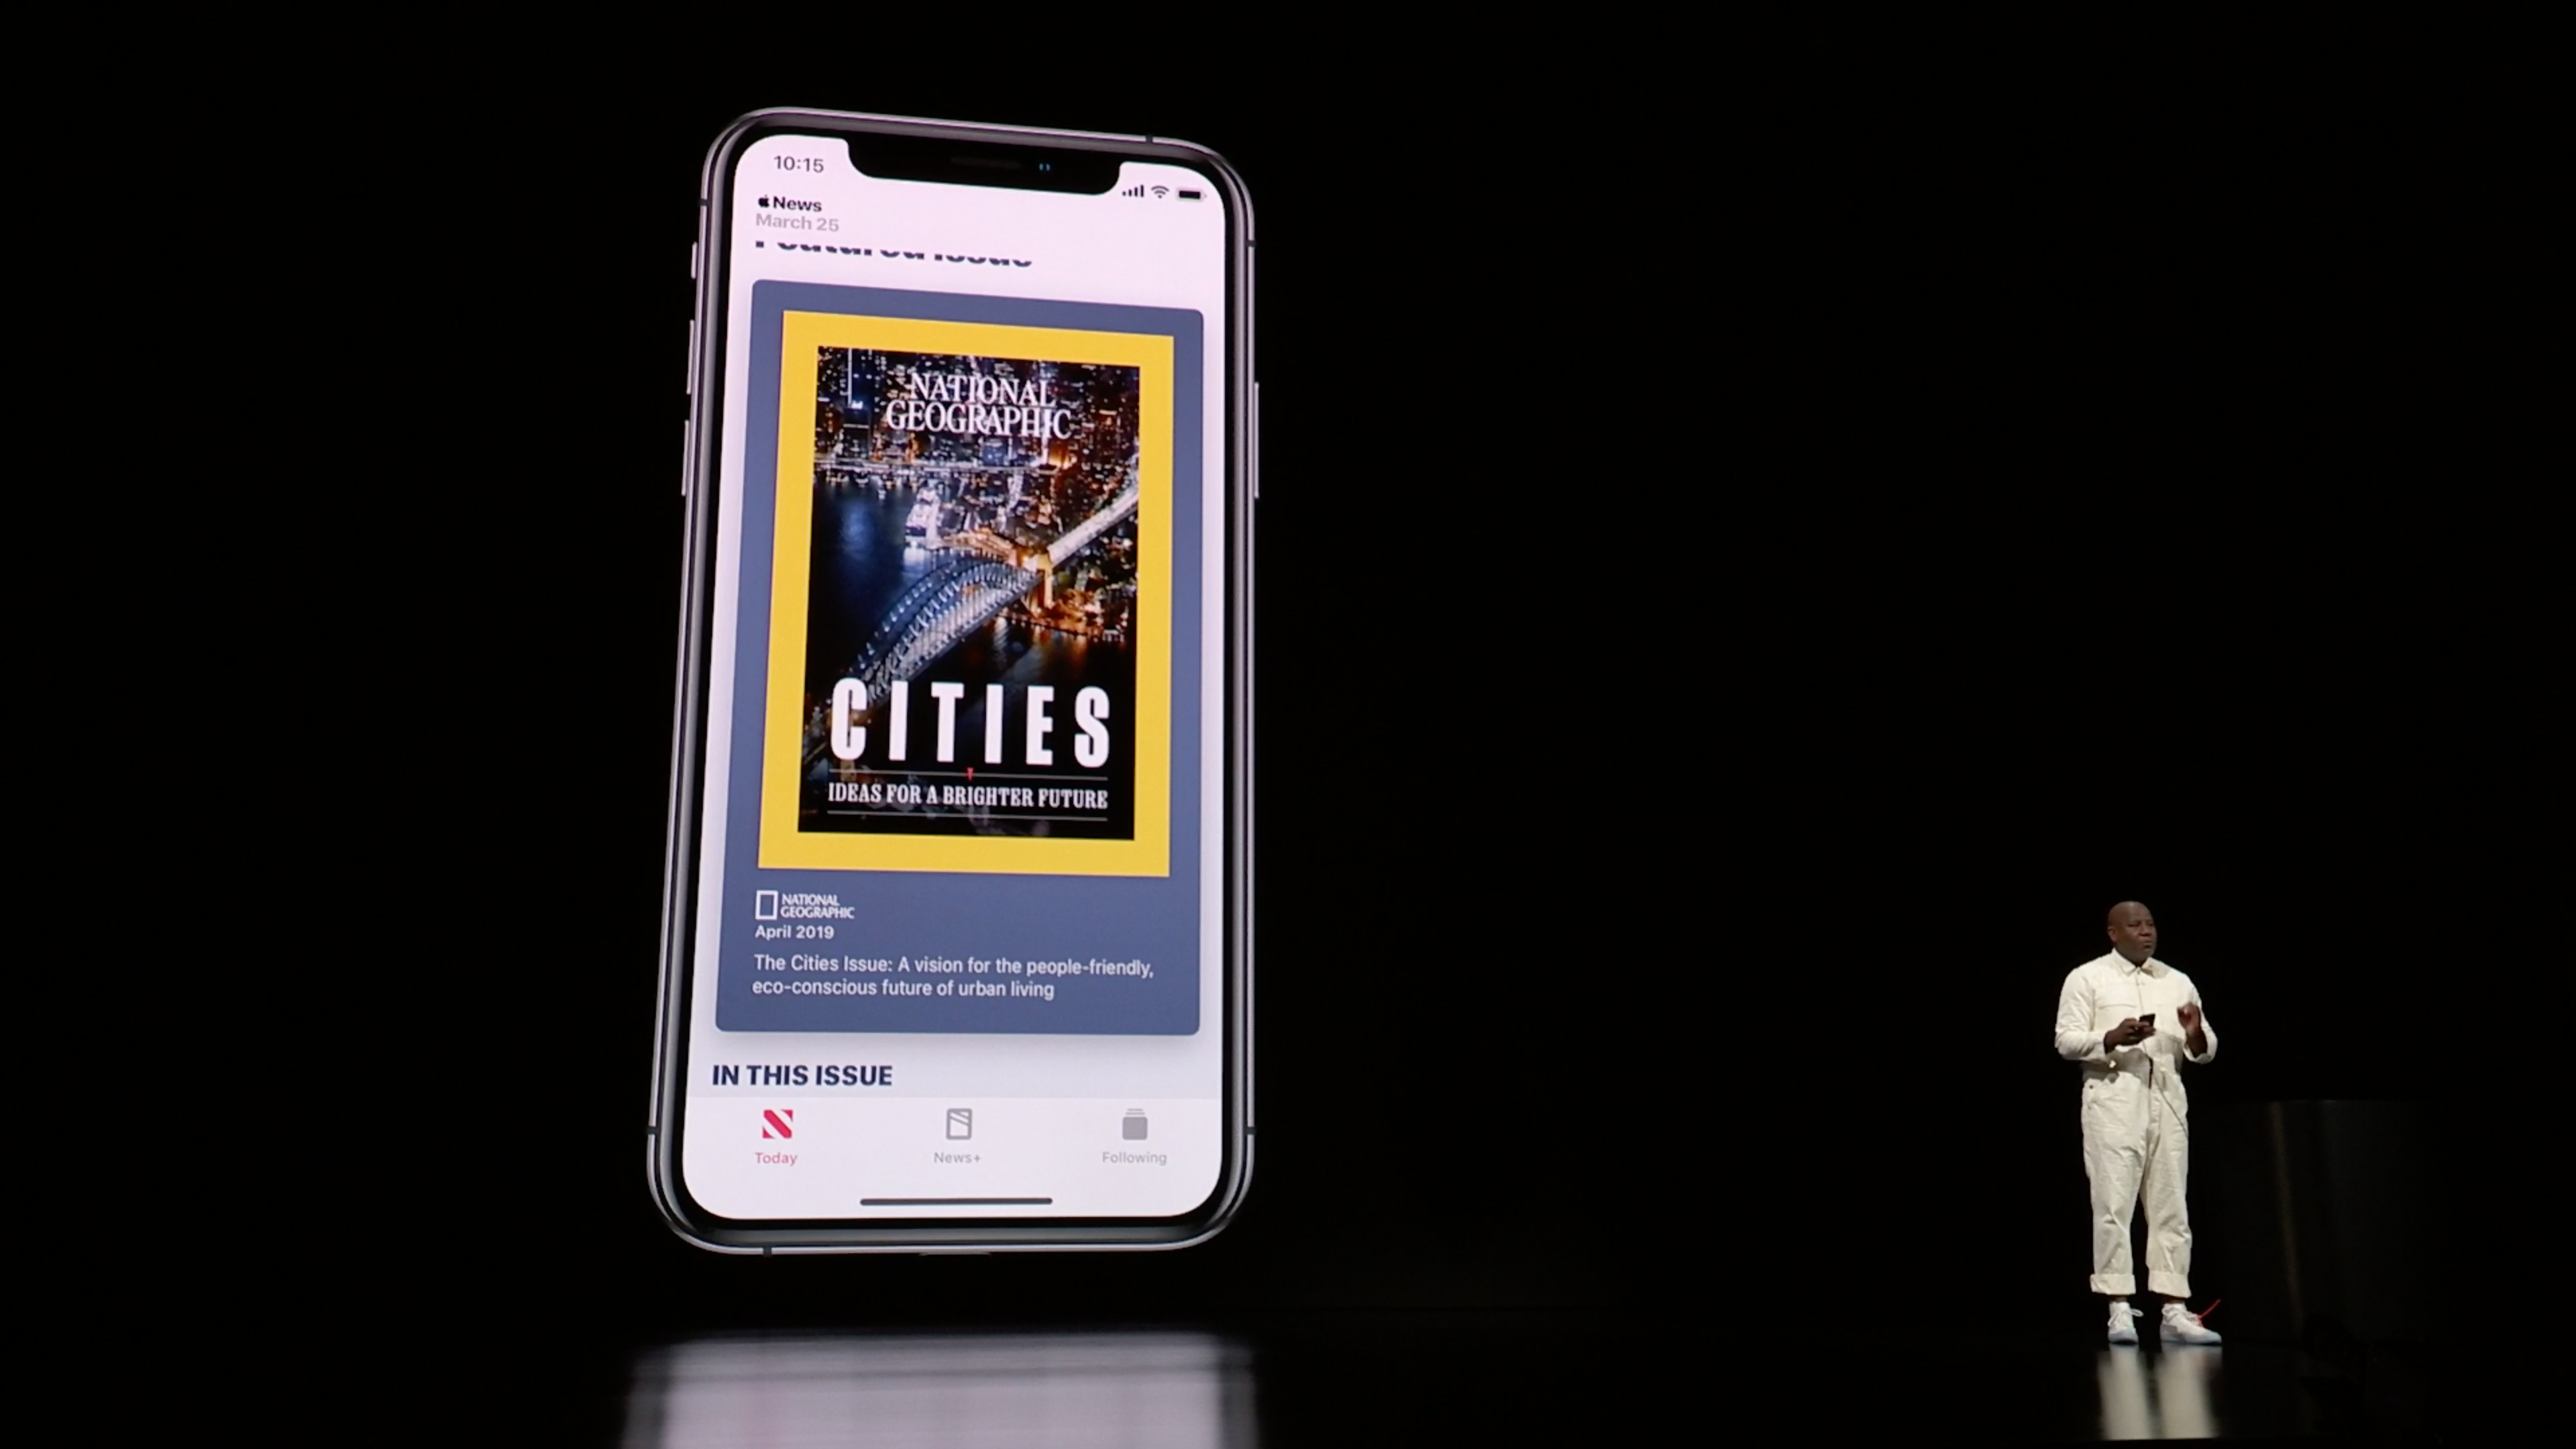 Photo of Wyatt Mitchell, Apple's director of application design, explaining live covers